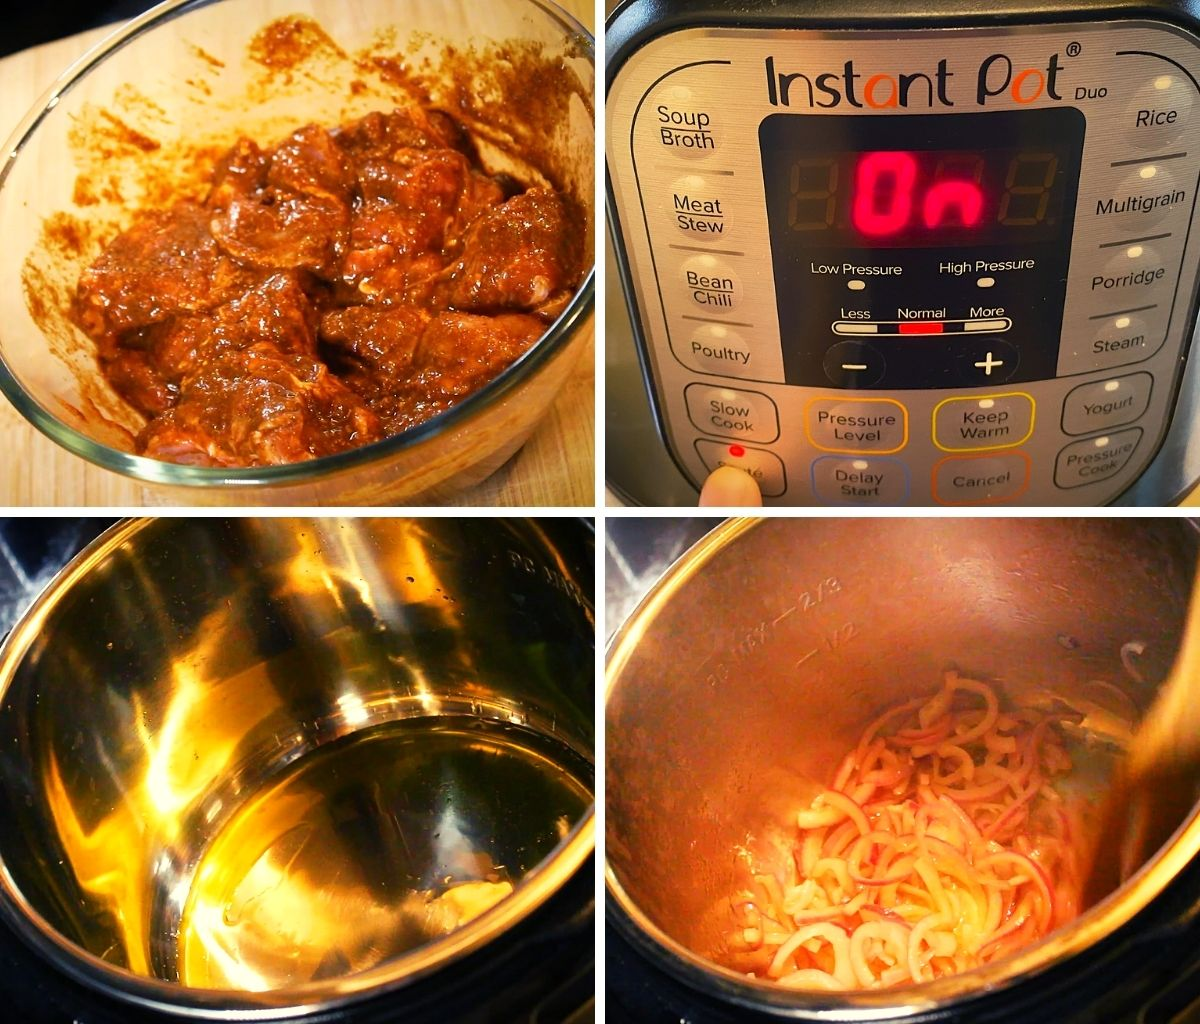 marinated mutton set to pressure cook in instant pot after sauteing onions